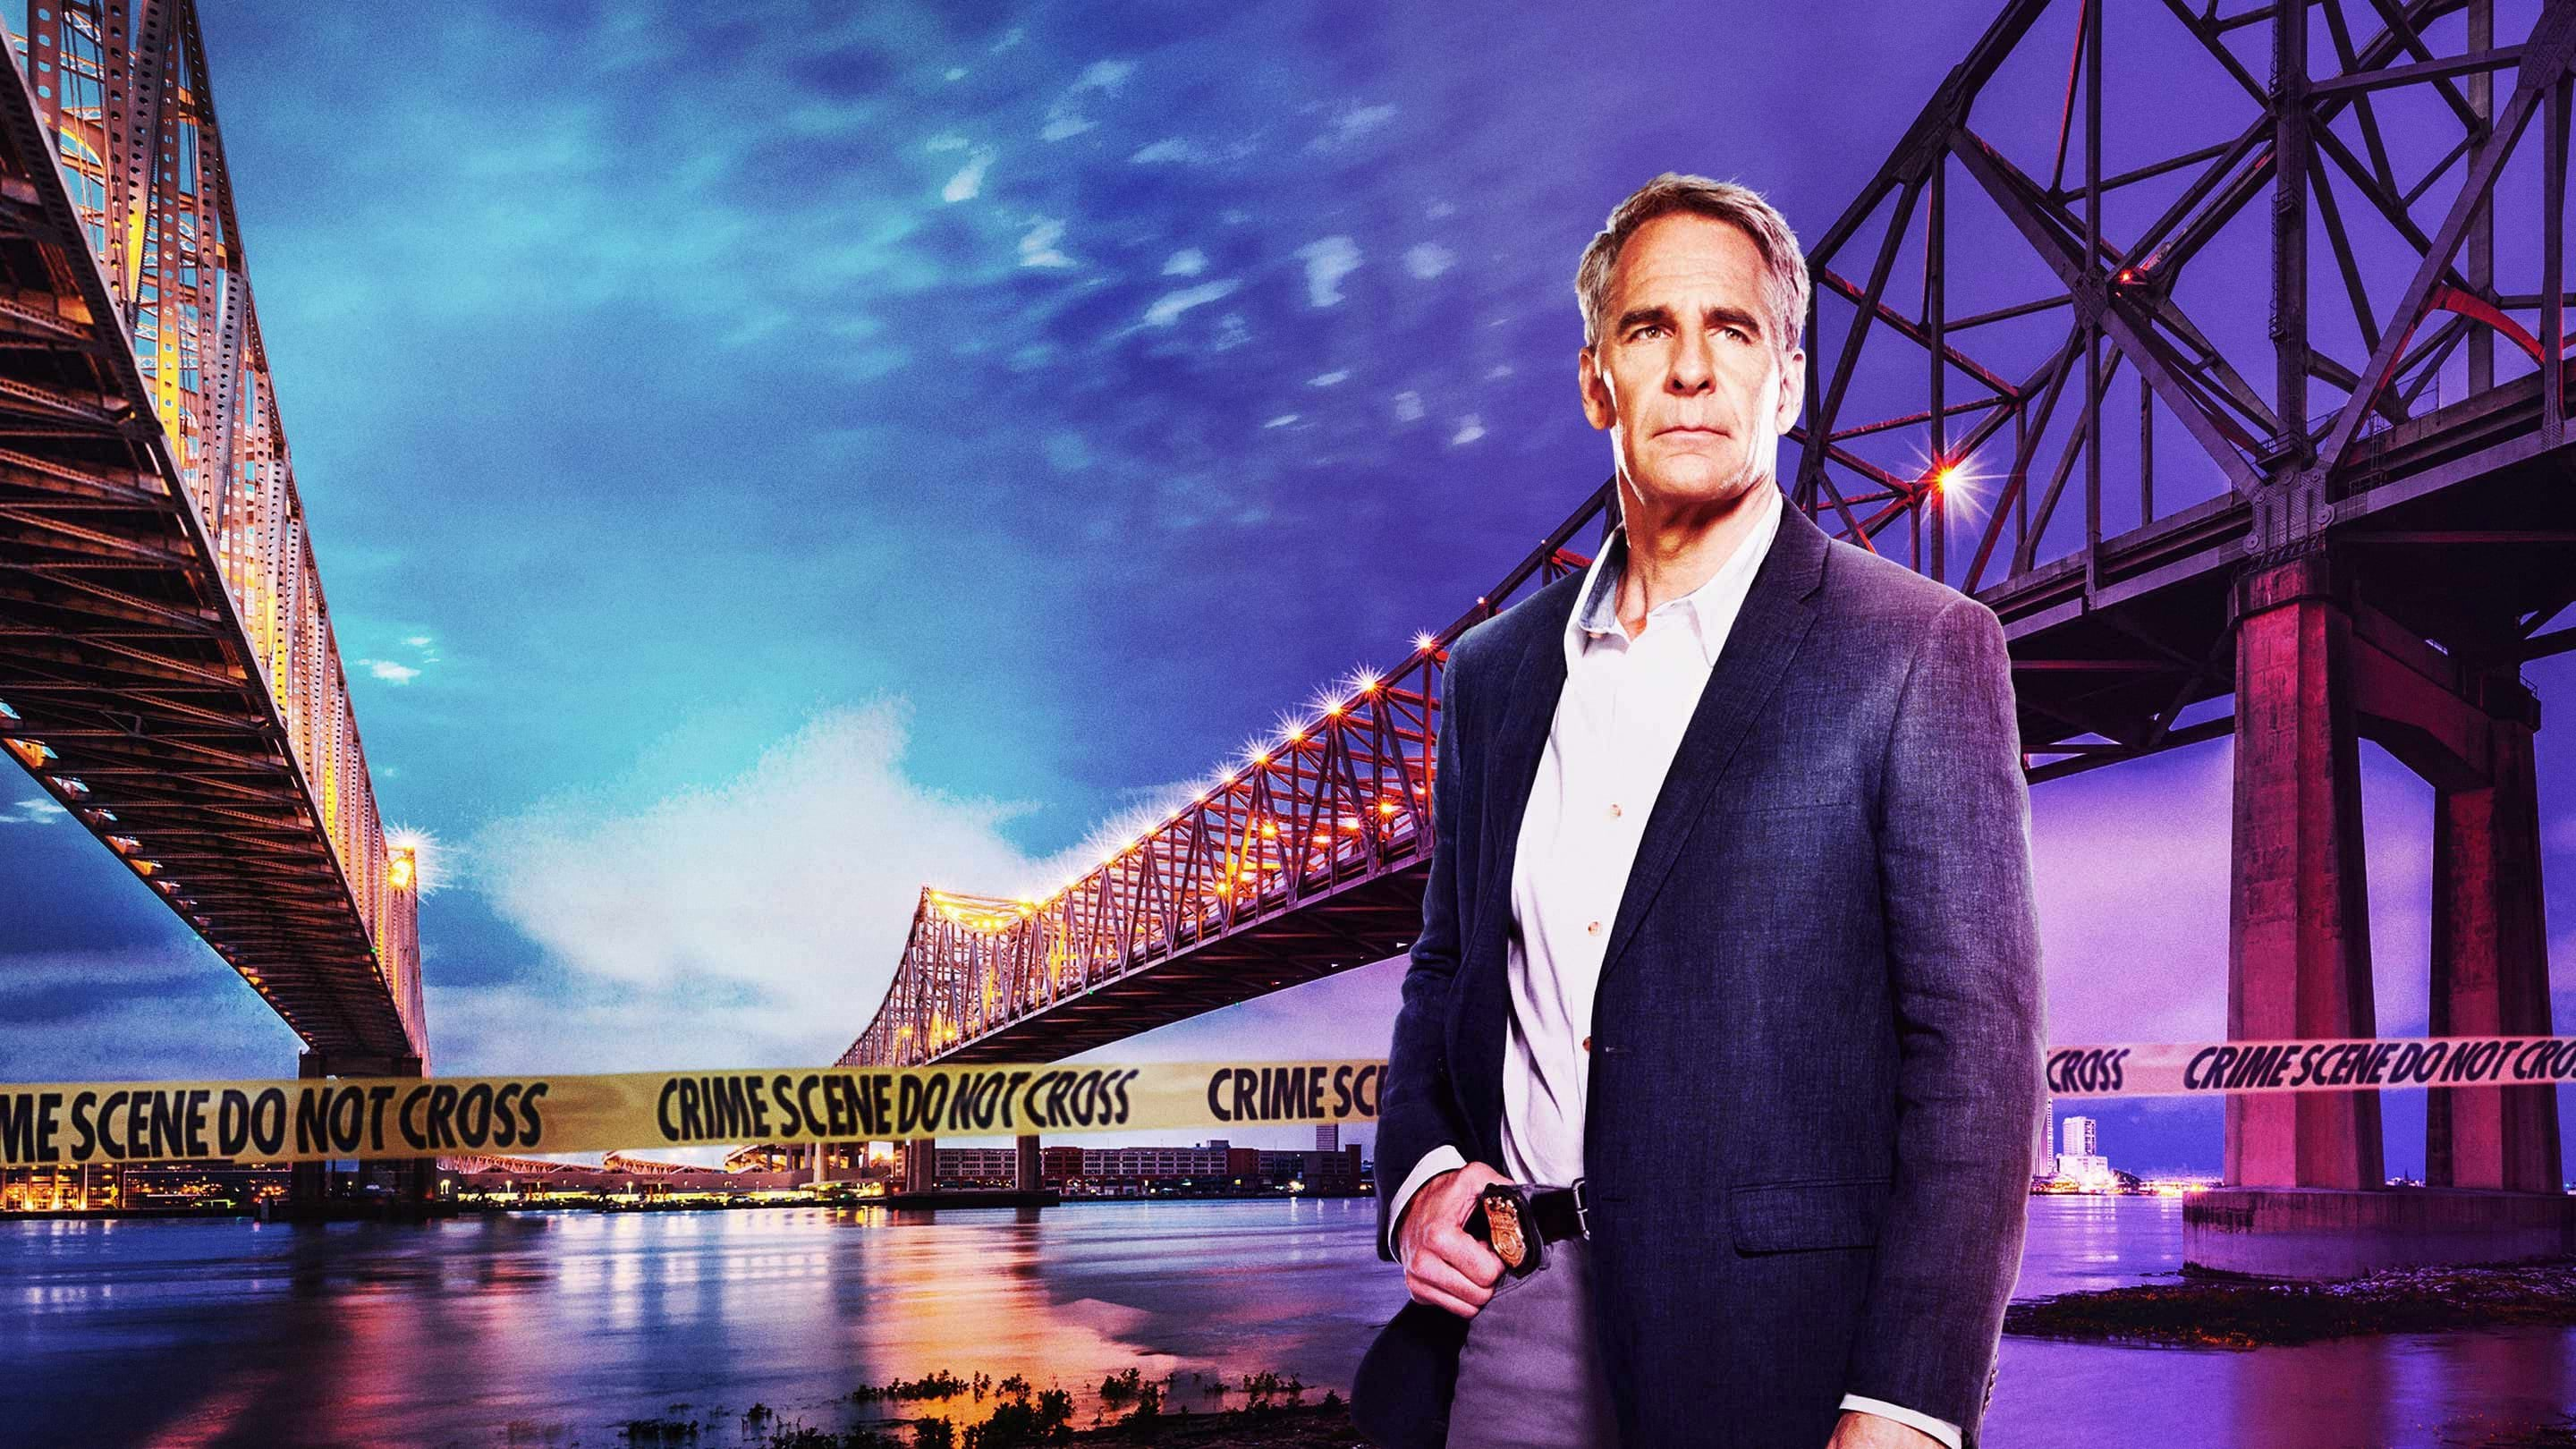 NCIS: New Orleans Season 7 Episode 9